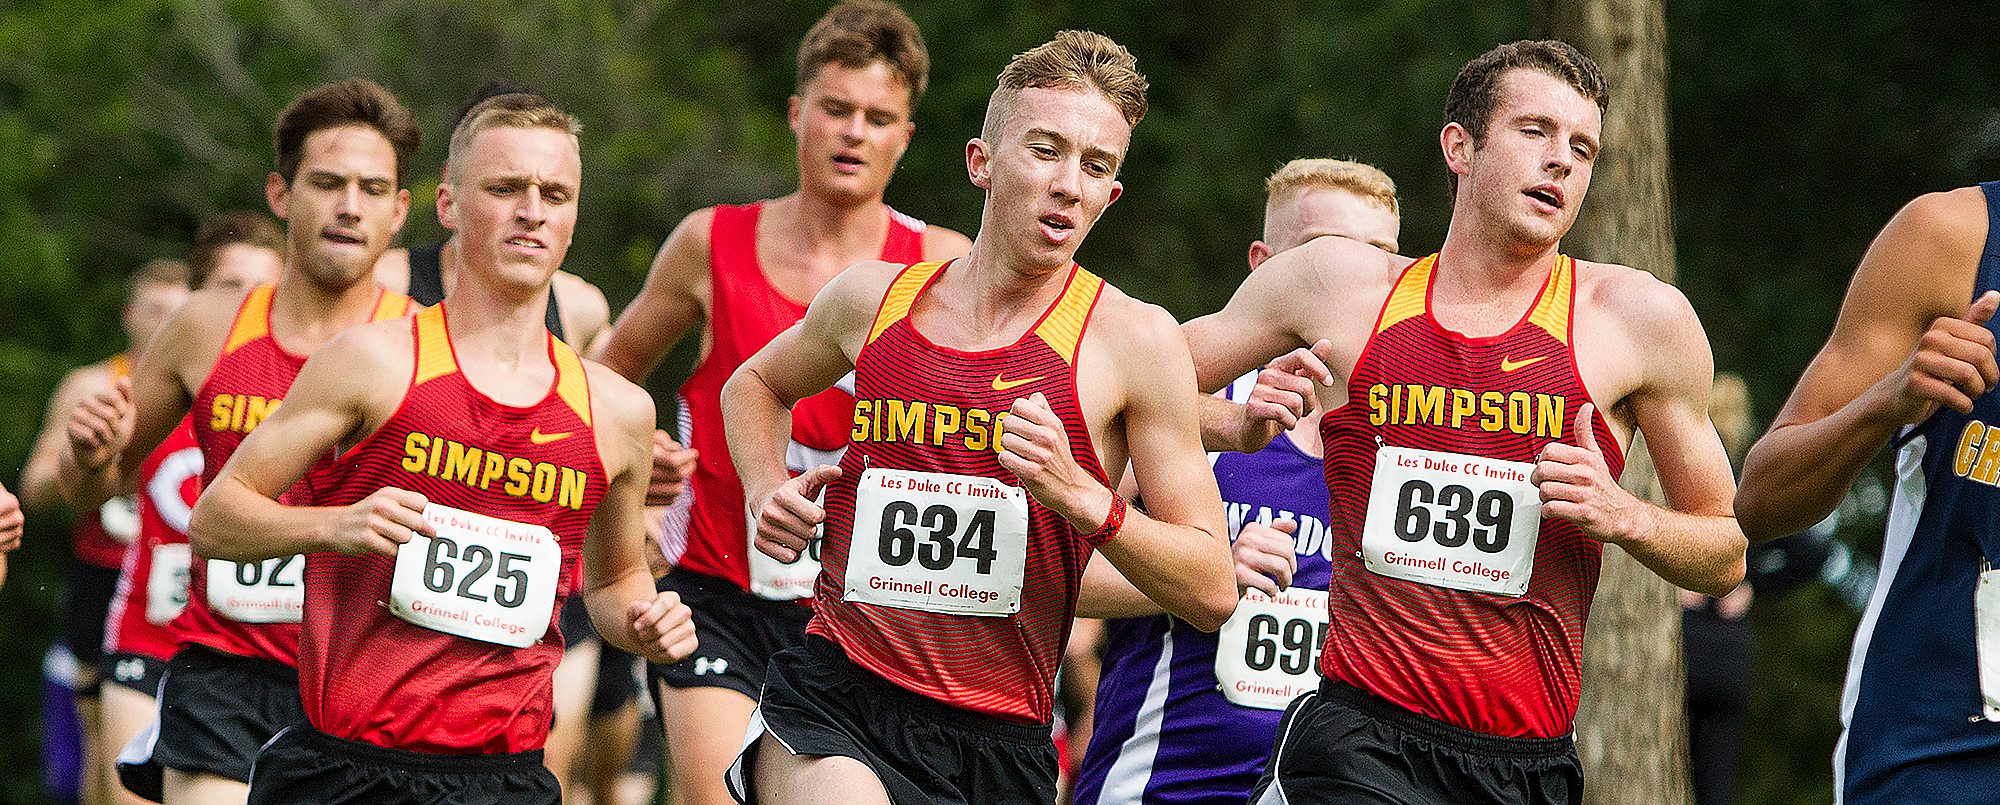 Storm cross country teams receive USTFCCCA All-Academic status